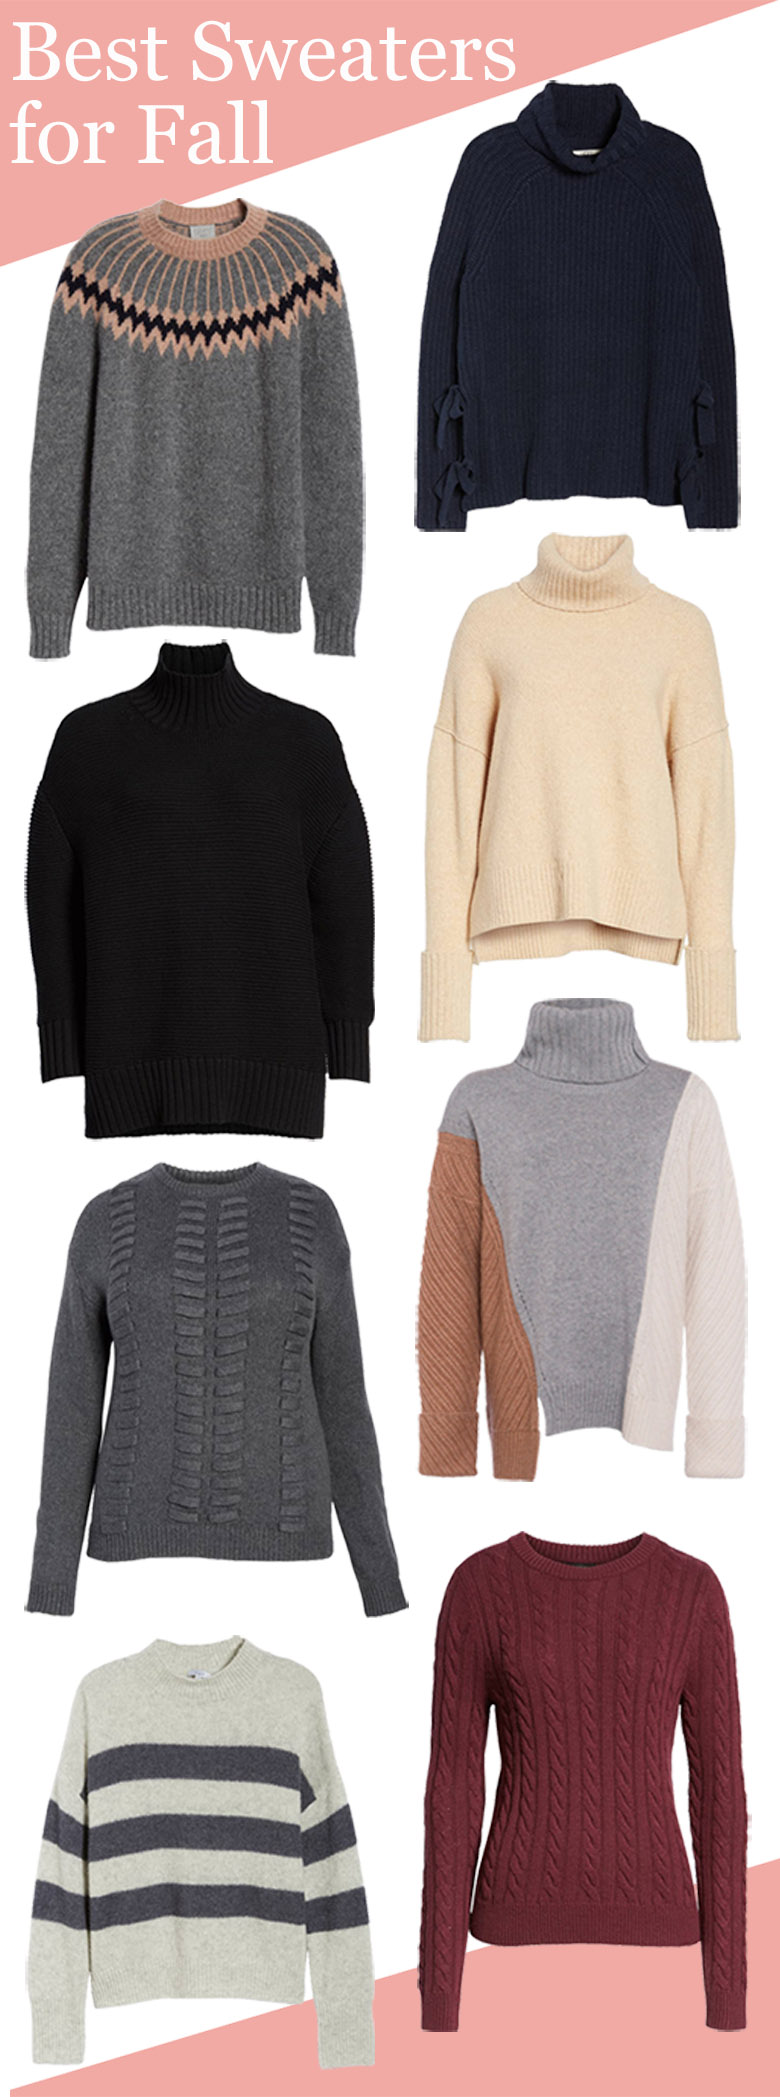 Best Fall Sweaters 2018 for Women. Get some fall outfit inspiration with the great fall sweaters for women. Stripes and solids, crew neck and oversized sweaters - you'll want each of these! #sweaters #fallfashion #fallstyle #outfitideas #nordstrom